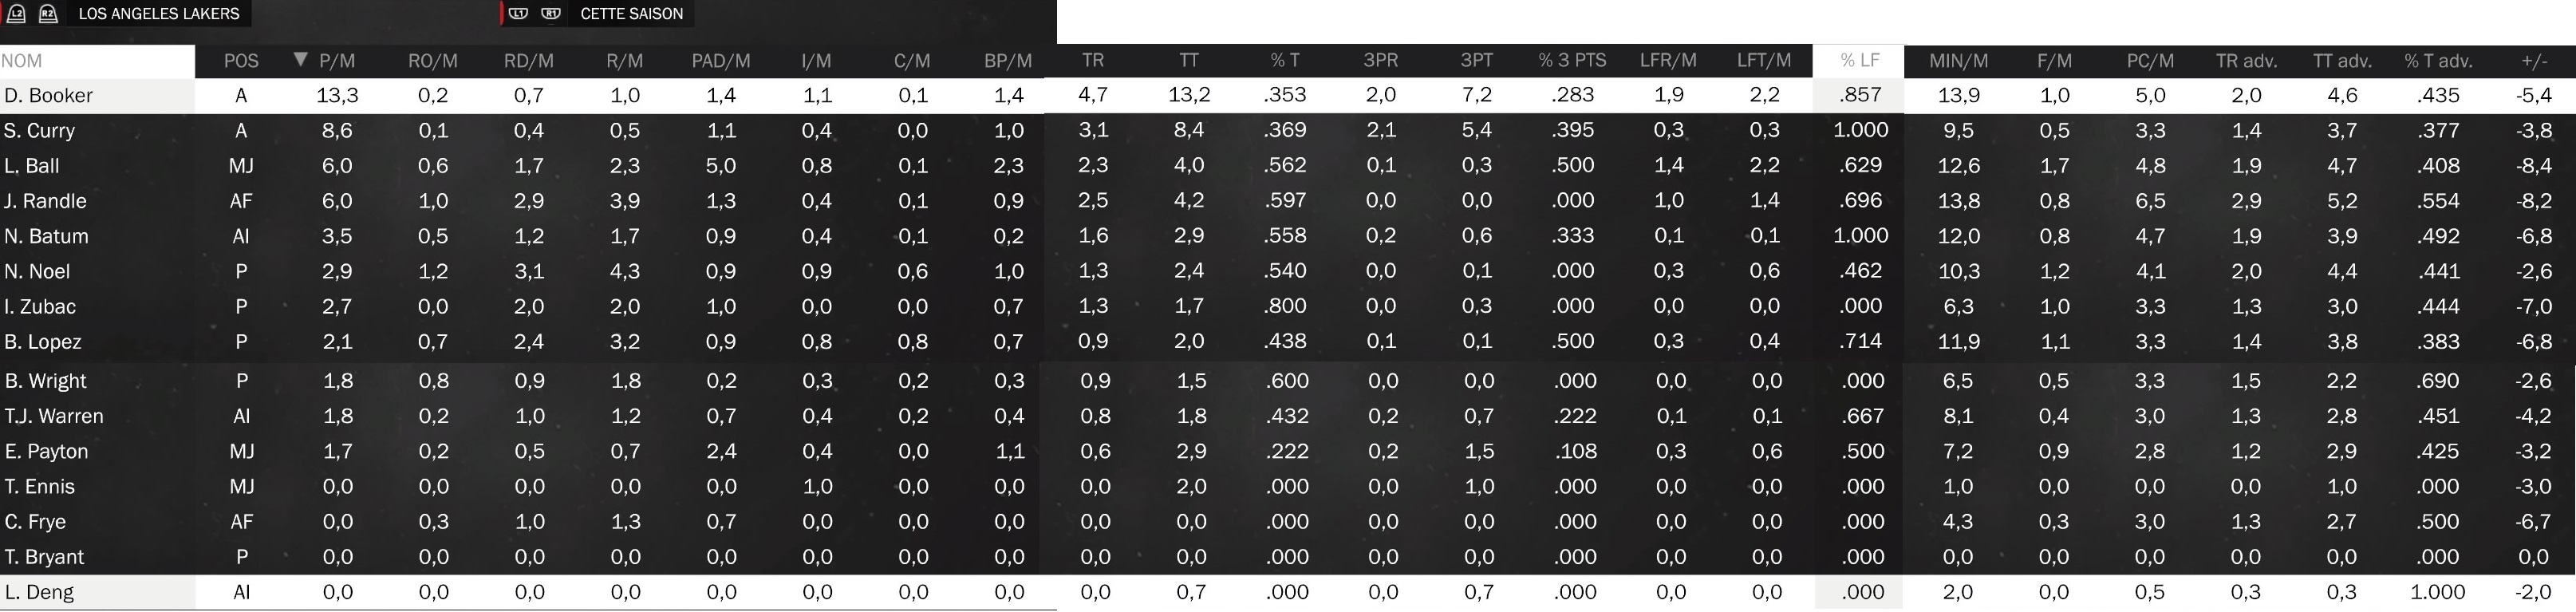 Statistiques individuelles Lakers10